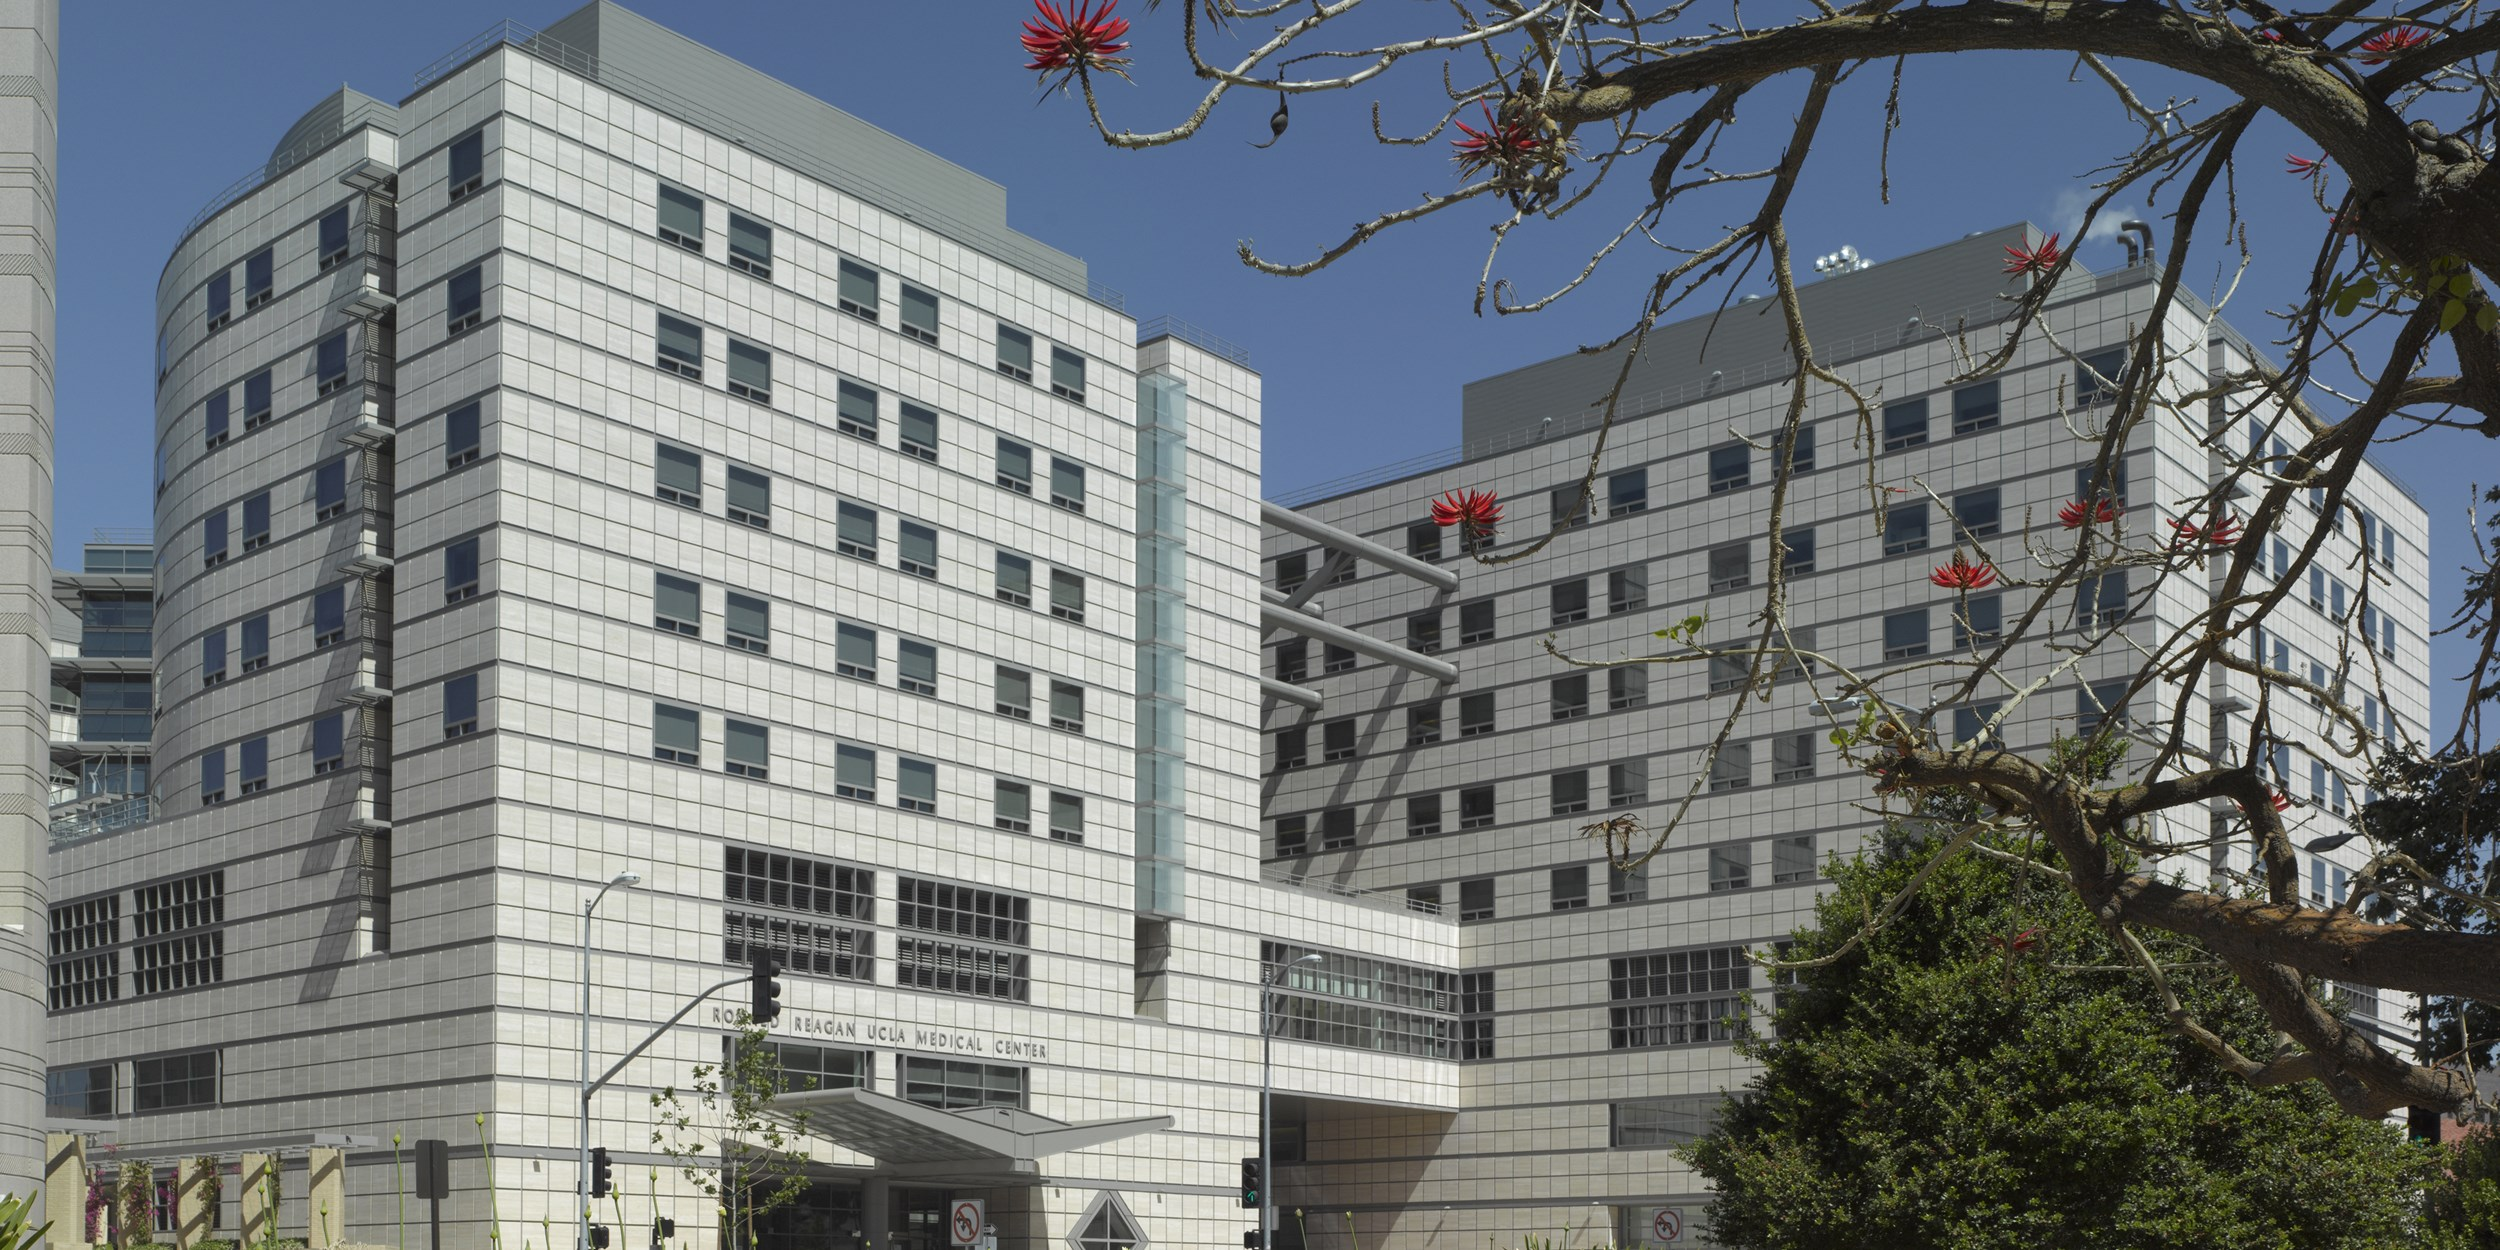 4.5m records exposed as UCLA Health and CVSPhoto hacked